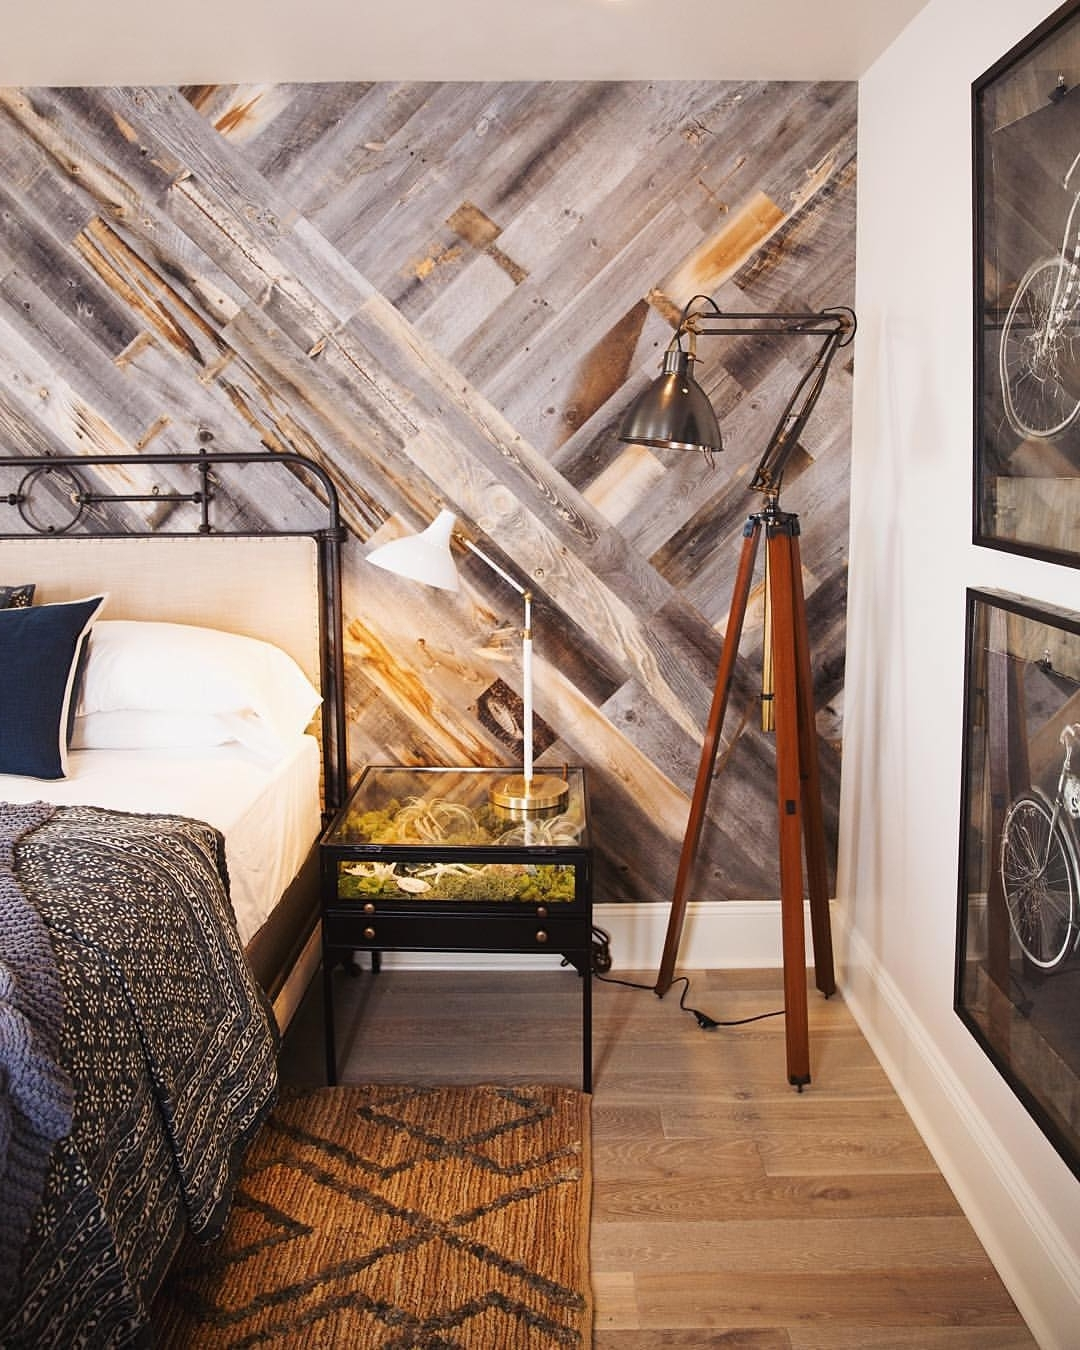 Accent Decorative Wall Wood Pattern Ideas Diy: 15 Best Collection Of Wood Paneling Wall Accents